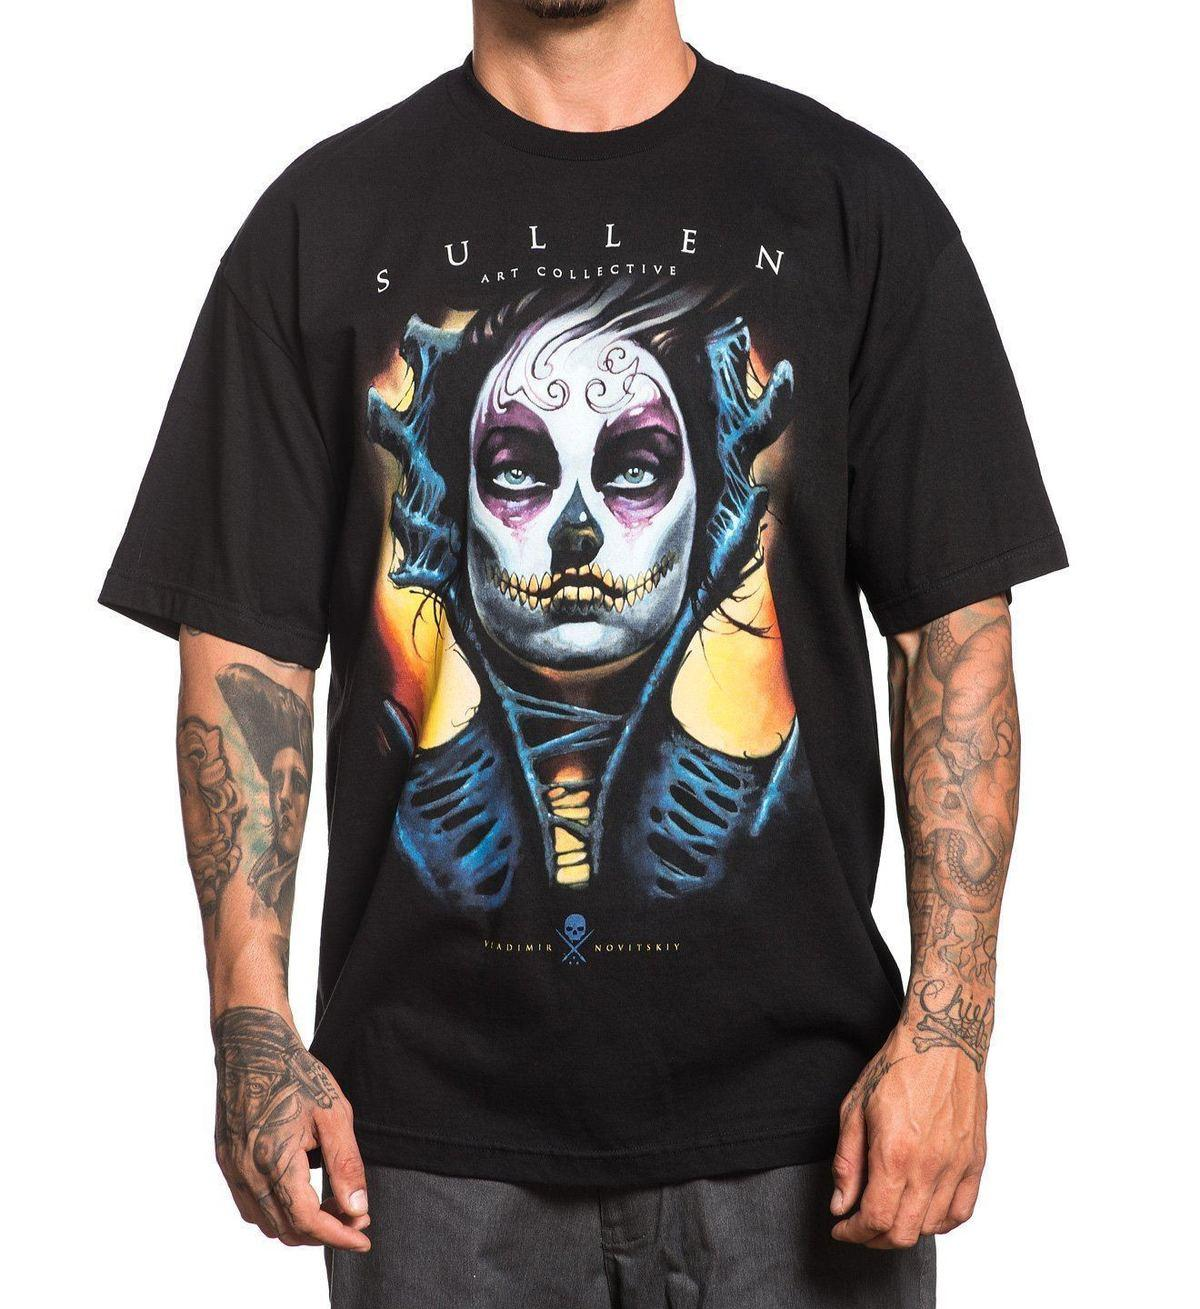 6b0c6e24345 SULLEN CLOTHING Eyes Tattoo Art T Shirt Black 2018 New Fashion Men S T  Shirts Short Sleeve Simple Style Humorous T Shirt Cool And Funny T Shirts  From ...